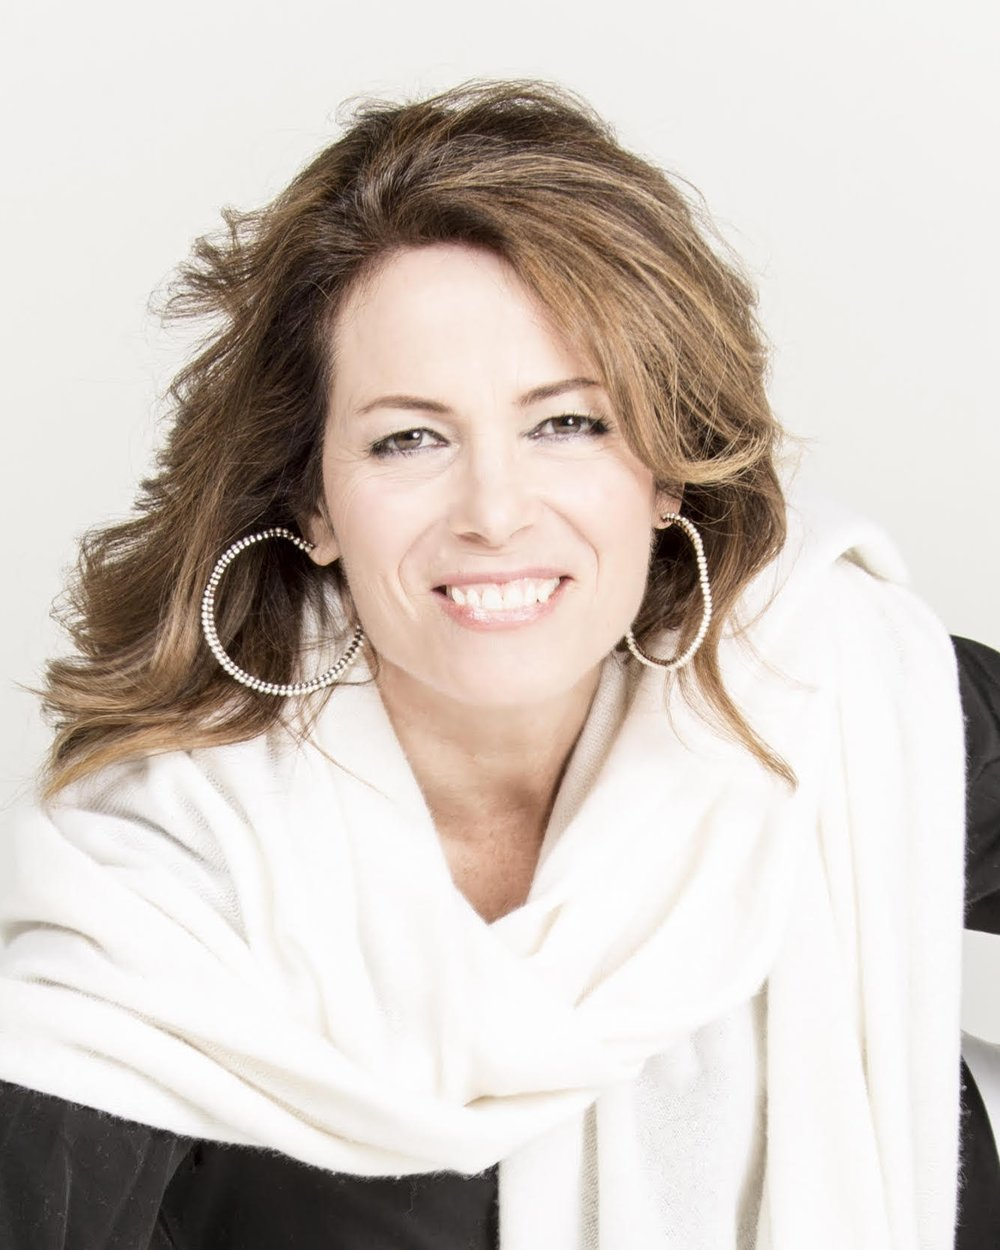 AMY MCDONALD, wellness hospitality consultant & owner of Under a Tree